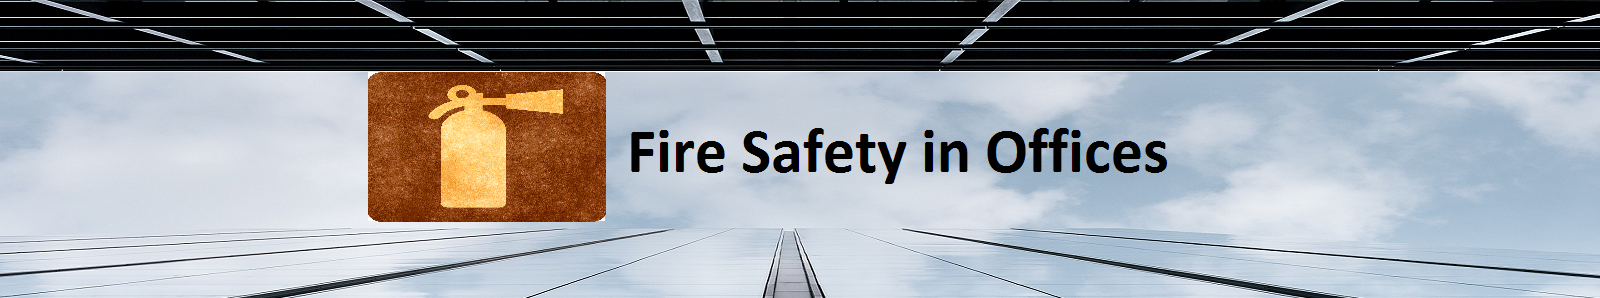 Fire Safety and Prevention at Office